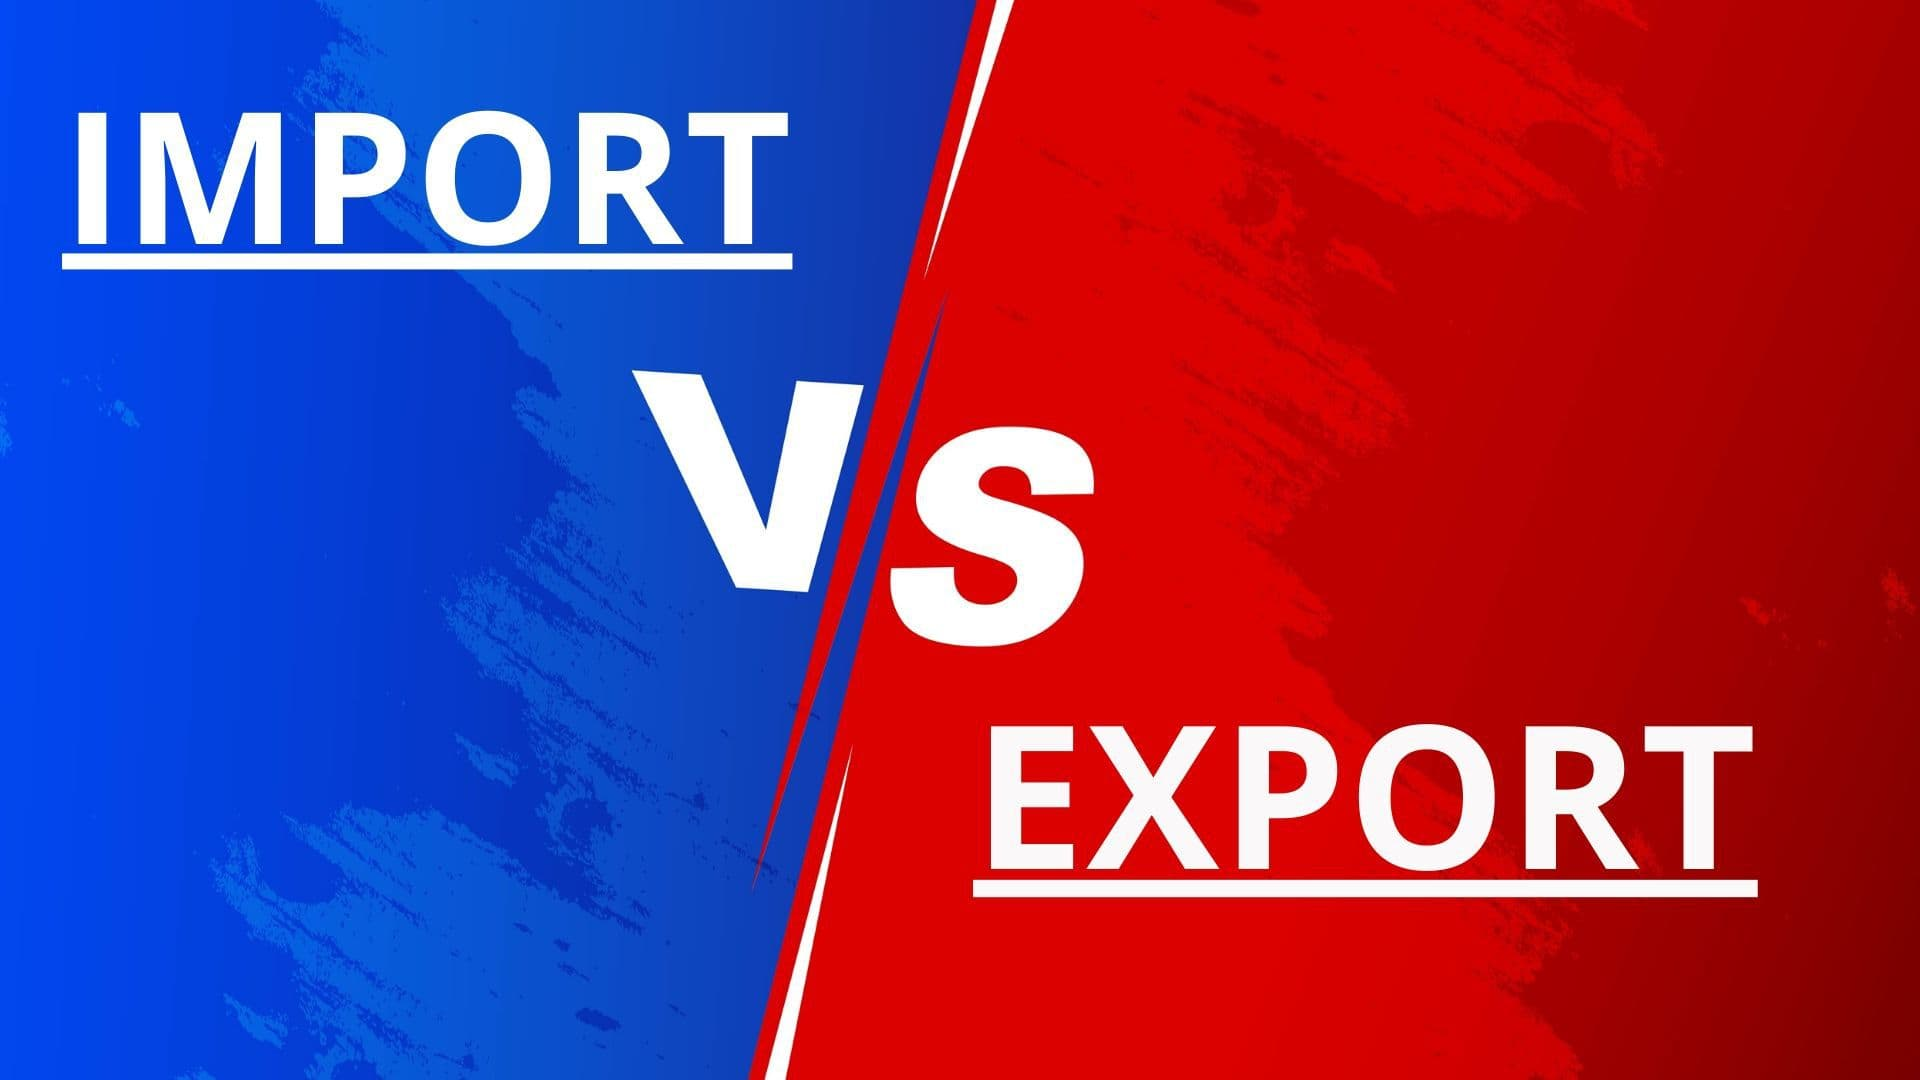 differences between import and export